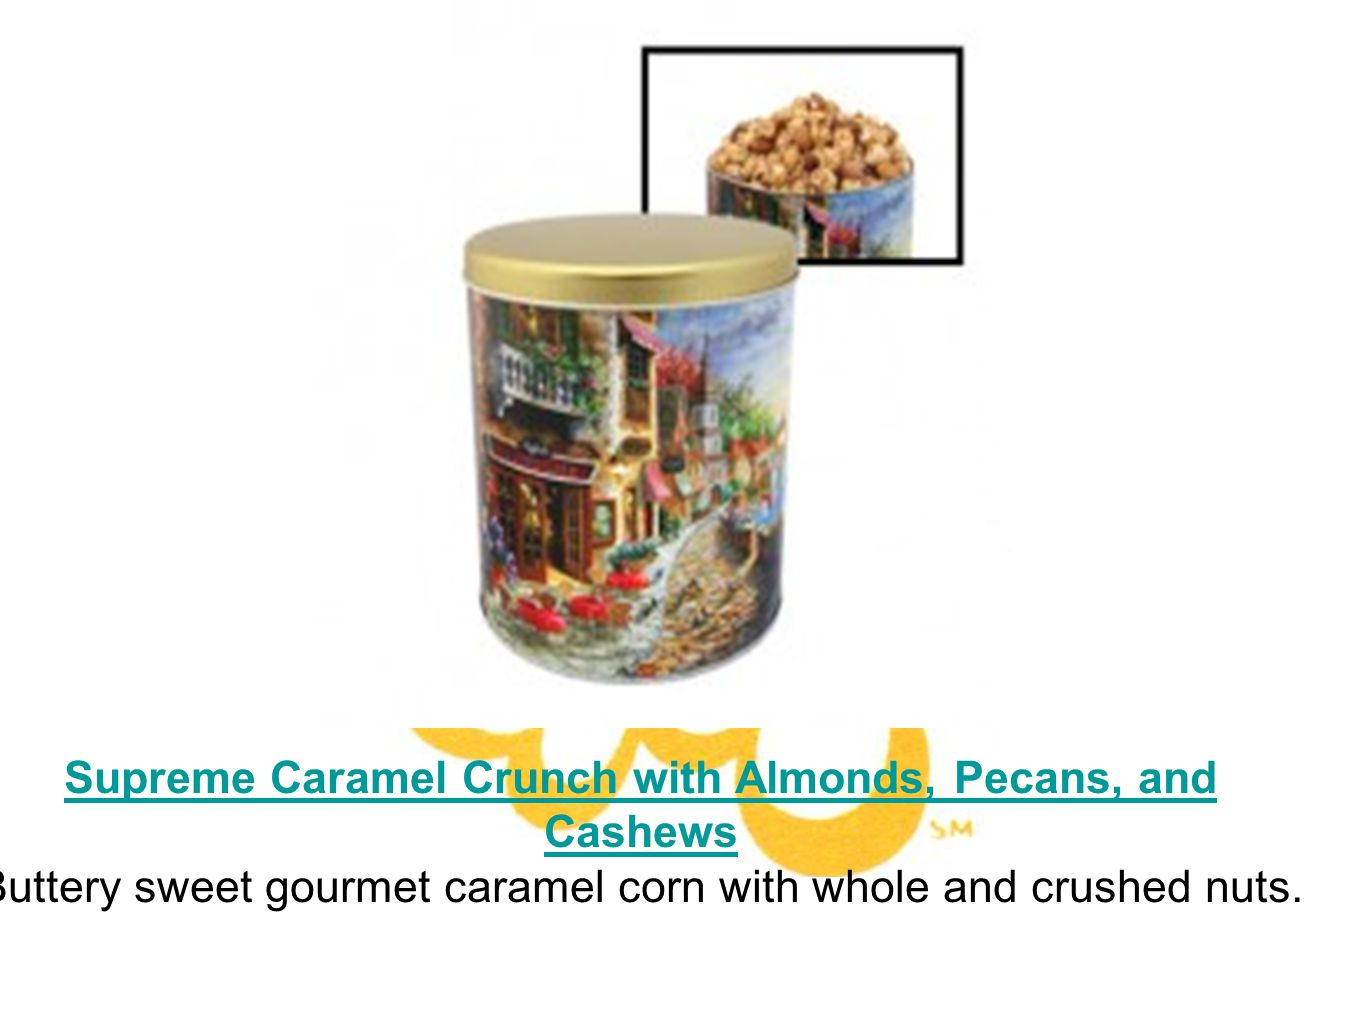 Supreme Caramel Crunch with Almonds, Pecans, and Cashews Buttery sweet gourmet caramel corn with whole and crushed nuts.